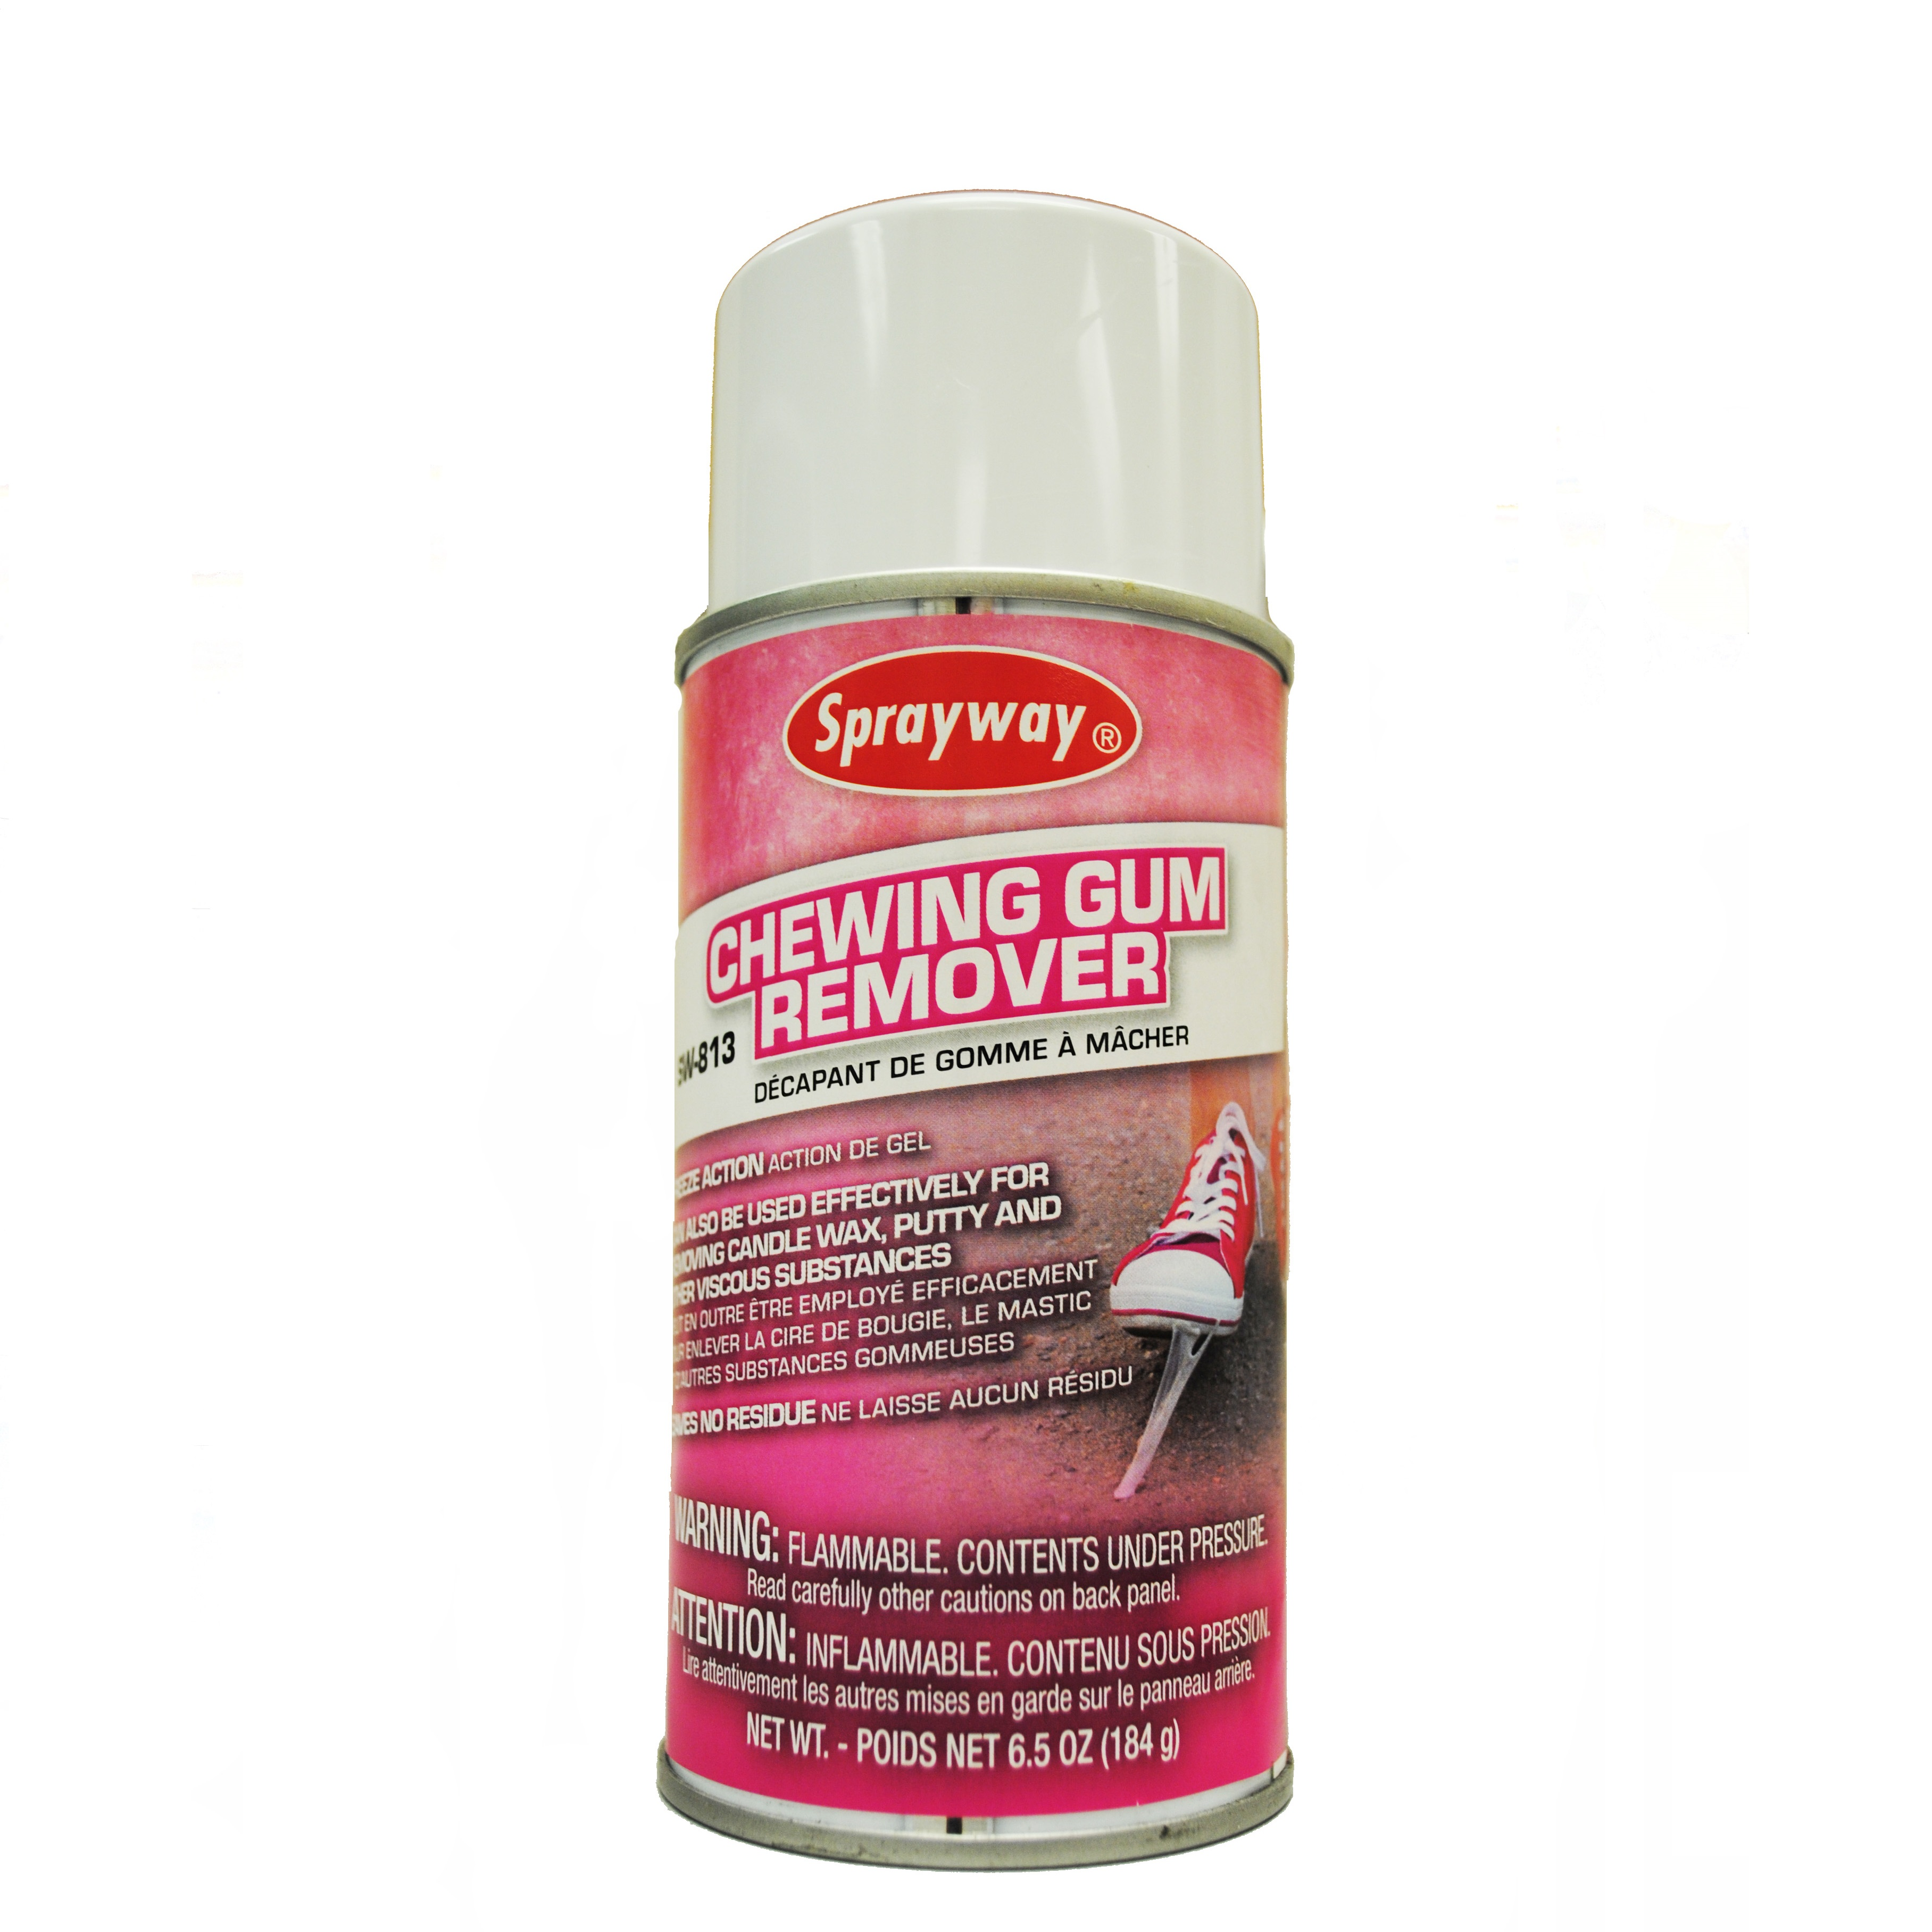 Chewing Gum Remover – 7oz aerosol can